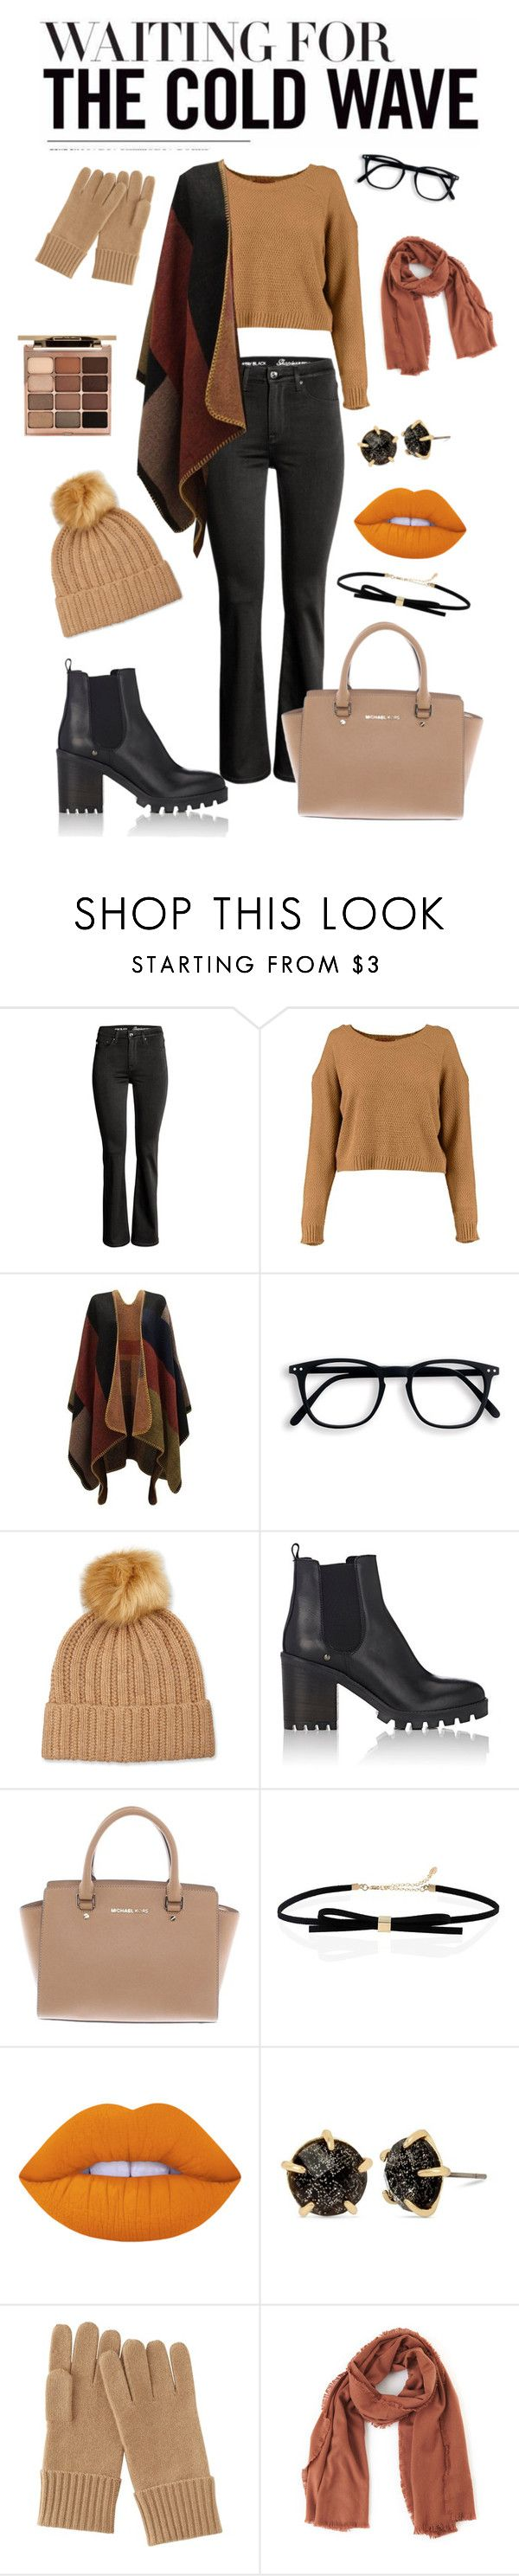 """""""Best Trend 2016: Neutrals, Cut Out Sweaters, Chokers, & Orange Lips"""" by stellap123 ❤ liked on Polyvore featuring Neiman Marcus, Barneys New York, Michael Kors, Lime Crime, Betsey Johnson, Uniqlo, TIBI, Stila, neutrals and choker"""